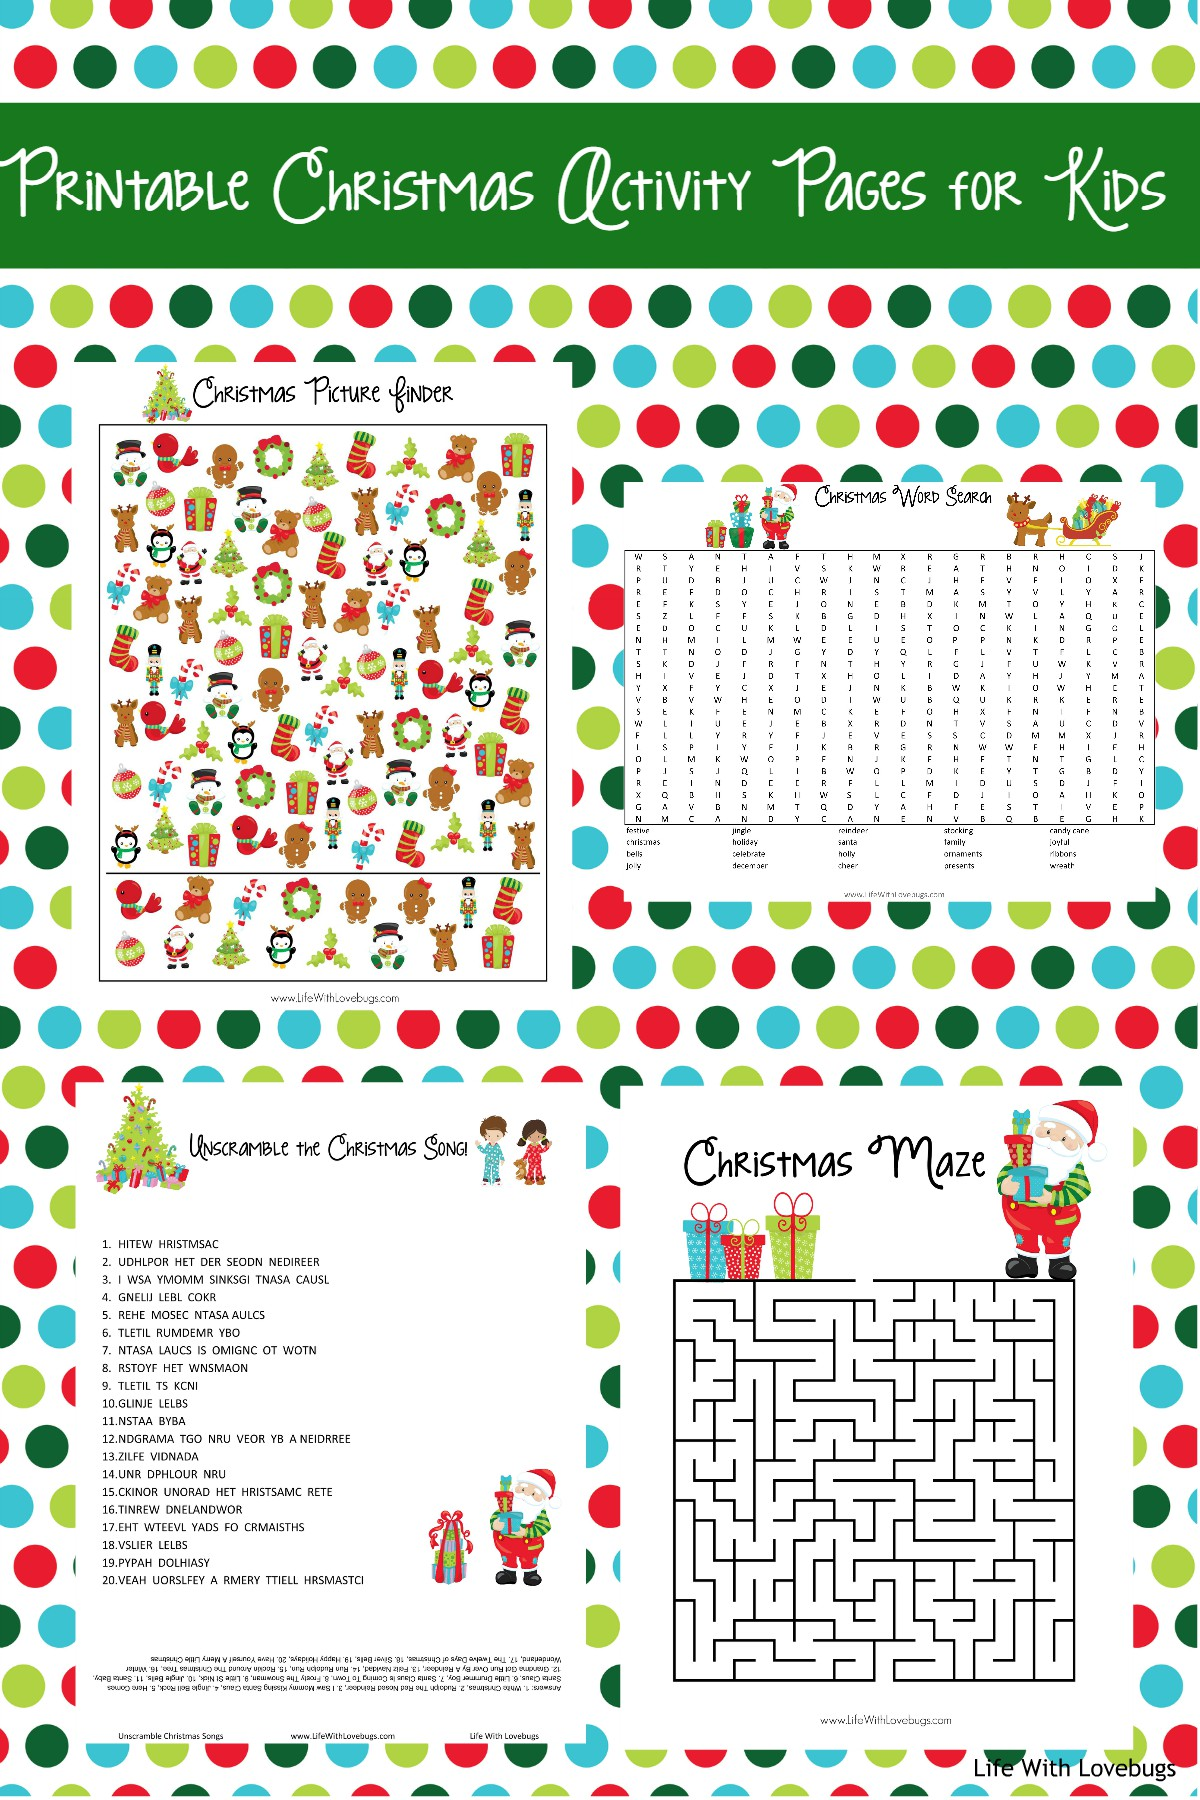 Hot Summer Days, Word Search Puzzle Solution - Printable Colouring ... | 1800x1200